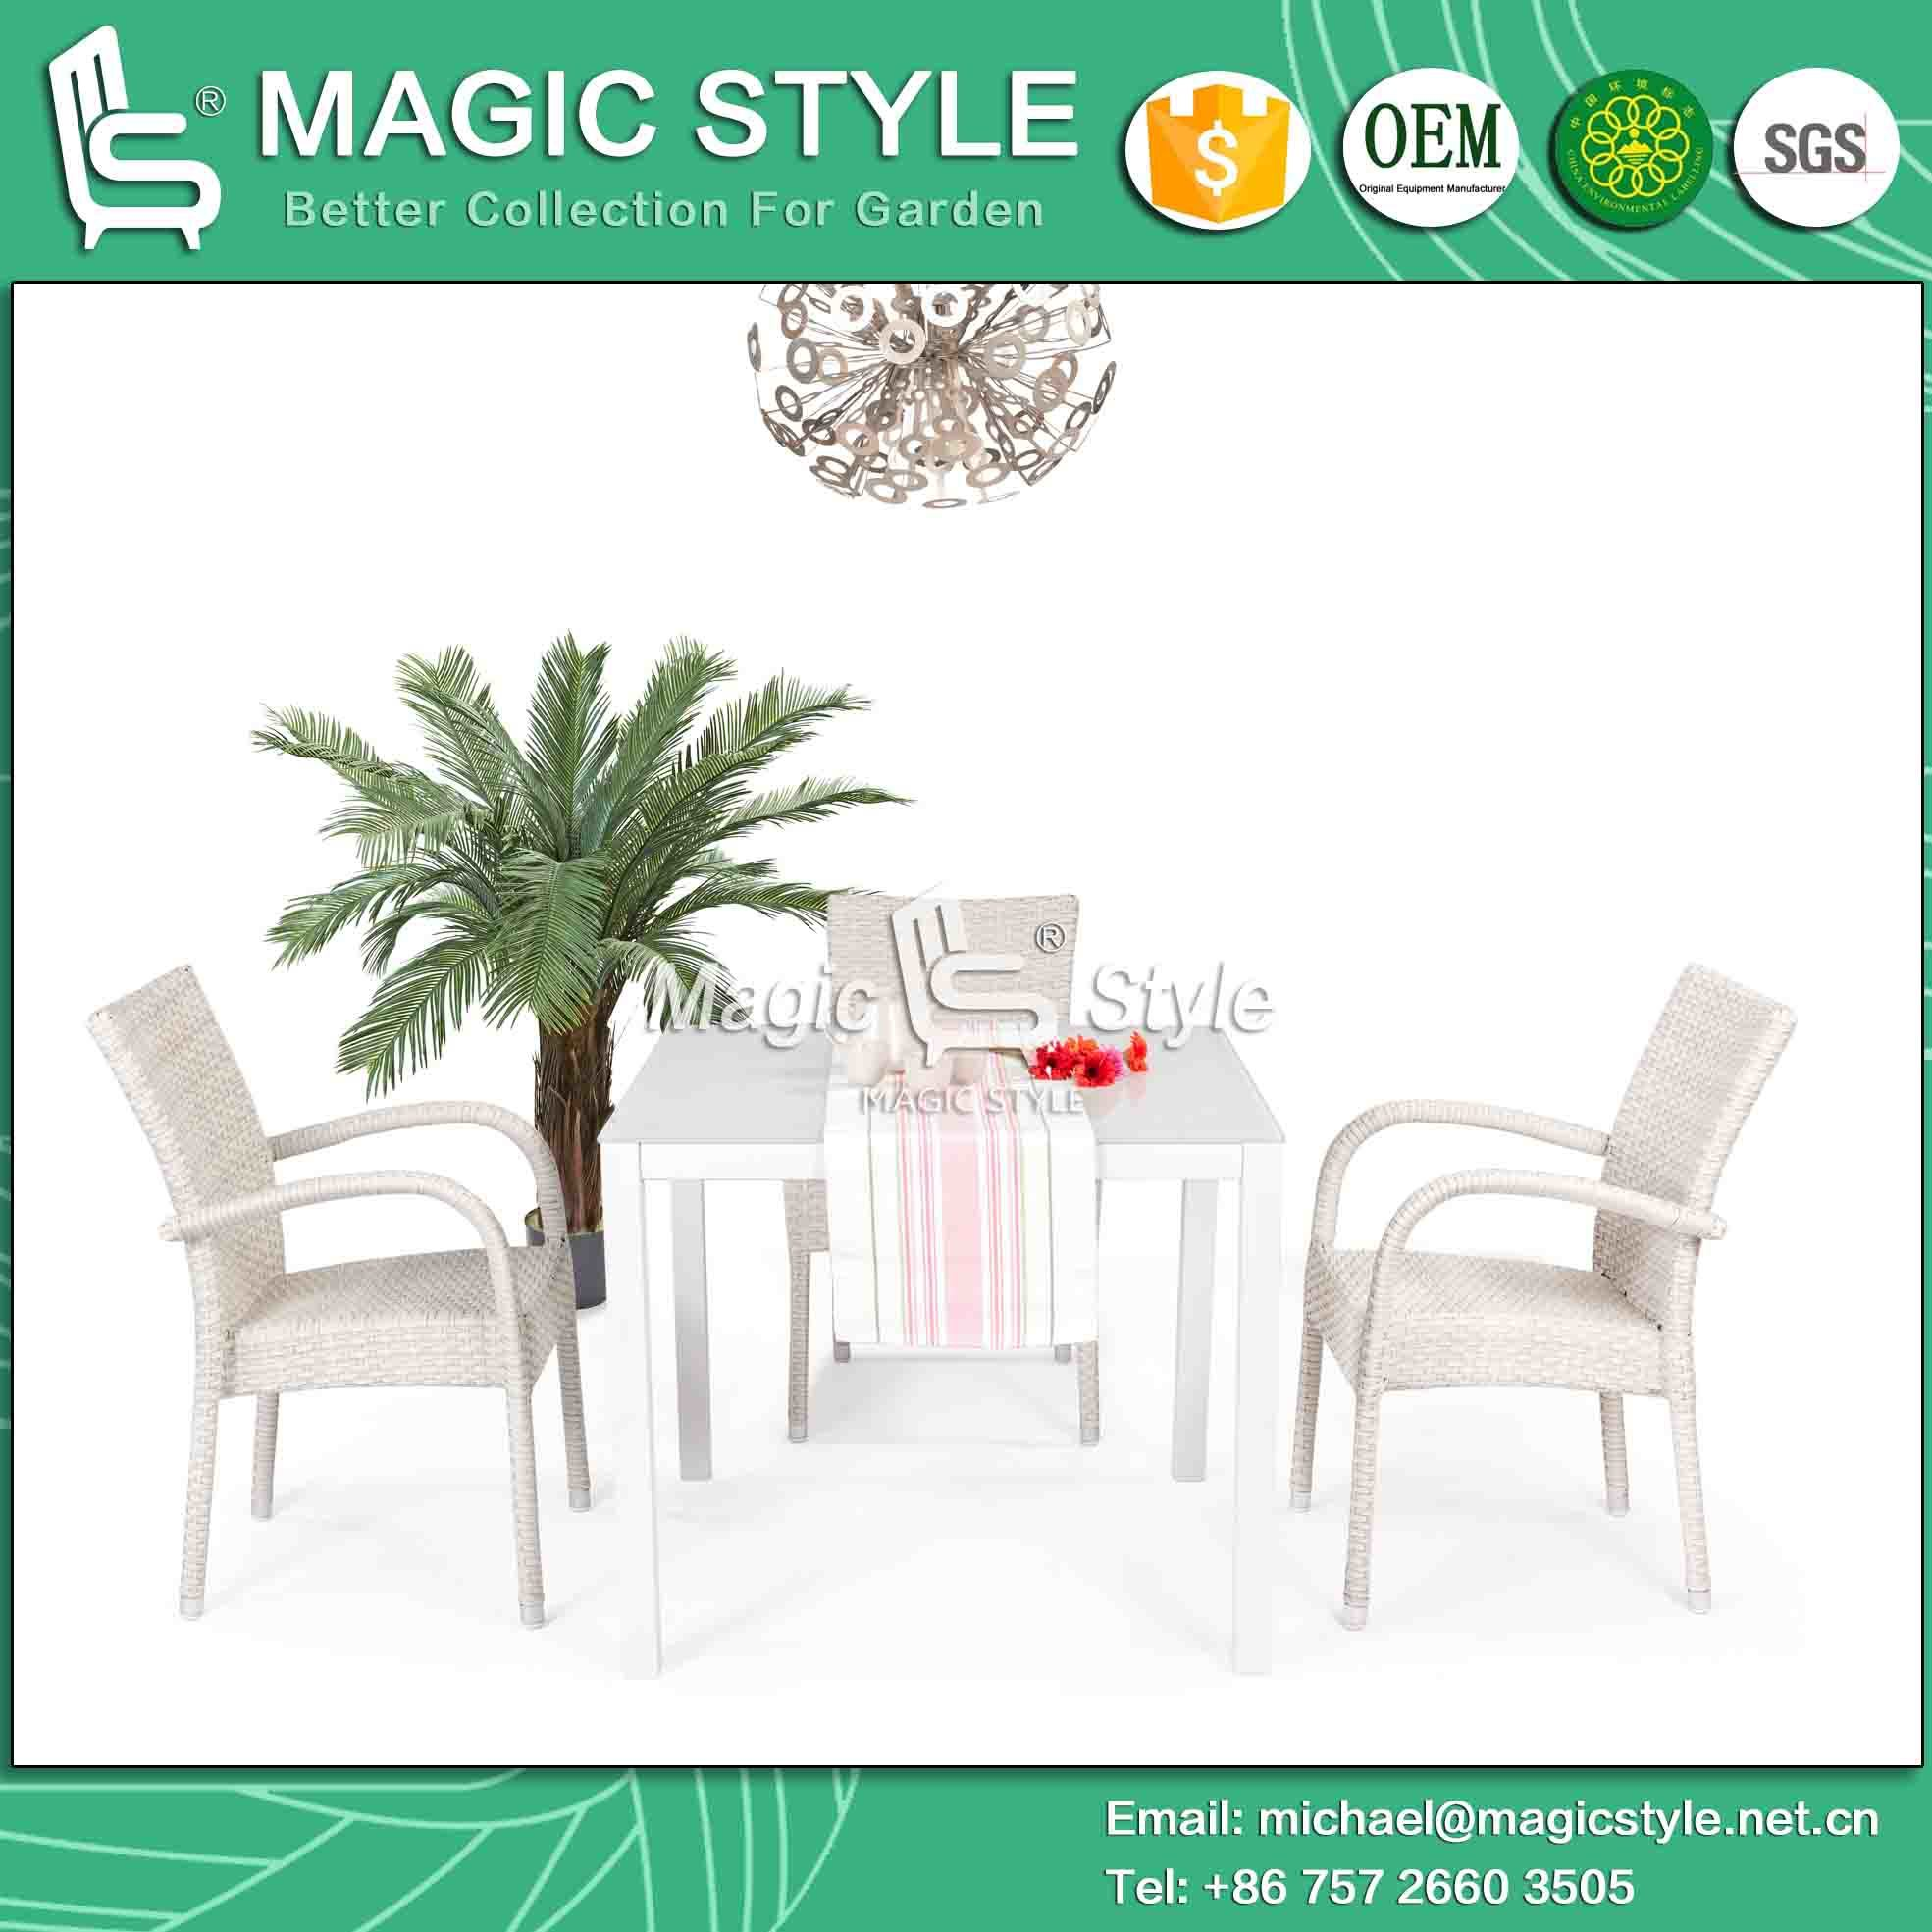 Hotel Projet Stackable Garden Dining Chair Bitro Chair Rattan Dining Chair Wicker Weaving Chair Cafe Chair Coffee Chair